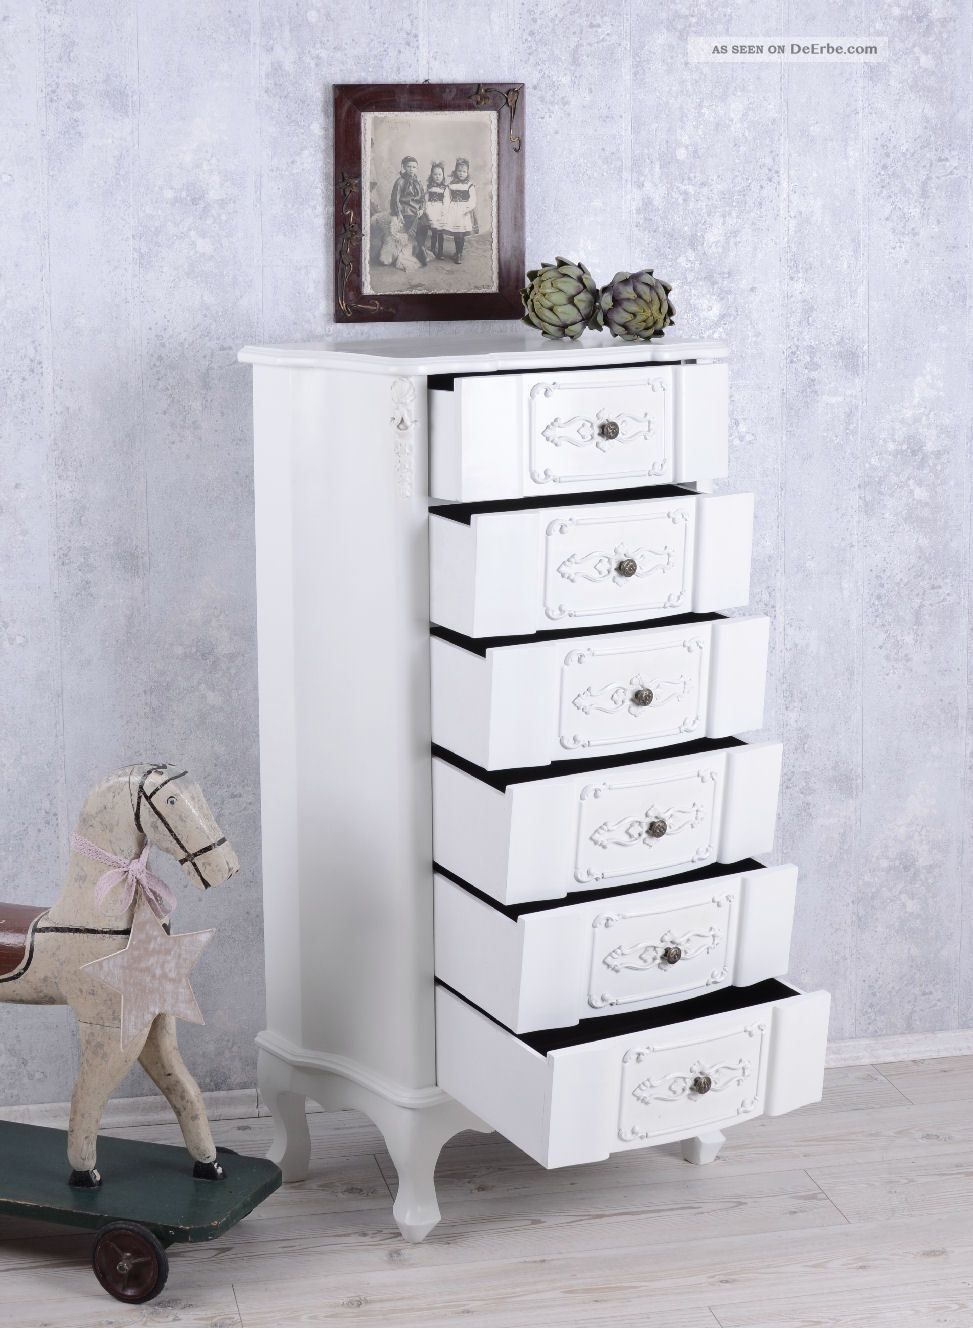 kommode weiss hochkommode shabby chic 6 schubladen vintage. Black Bedroom Furniture Sets. Home Design Ideas